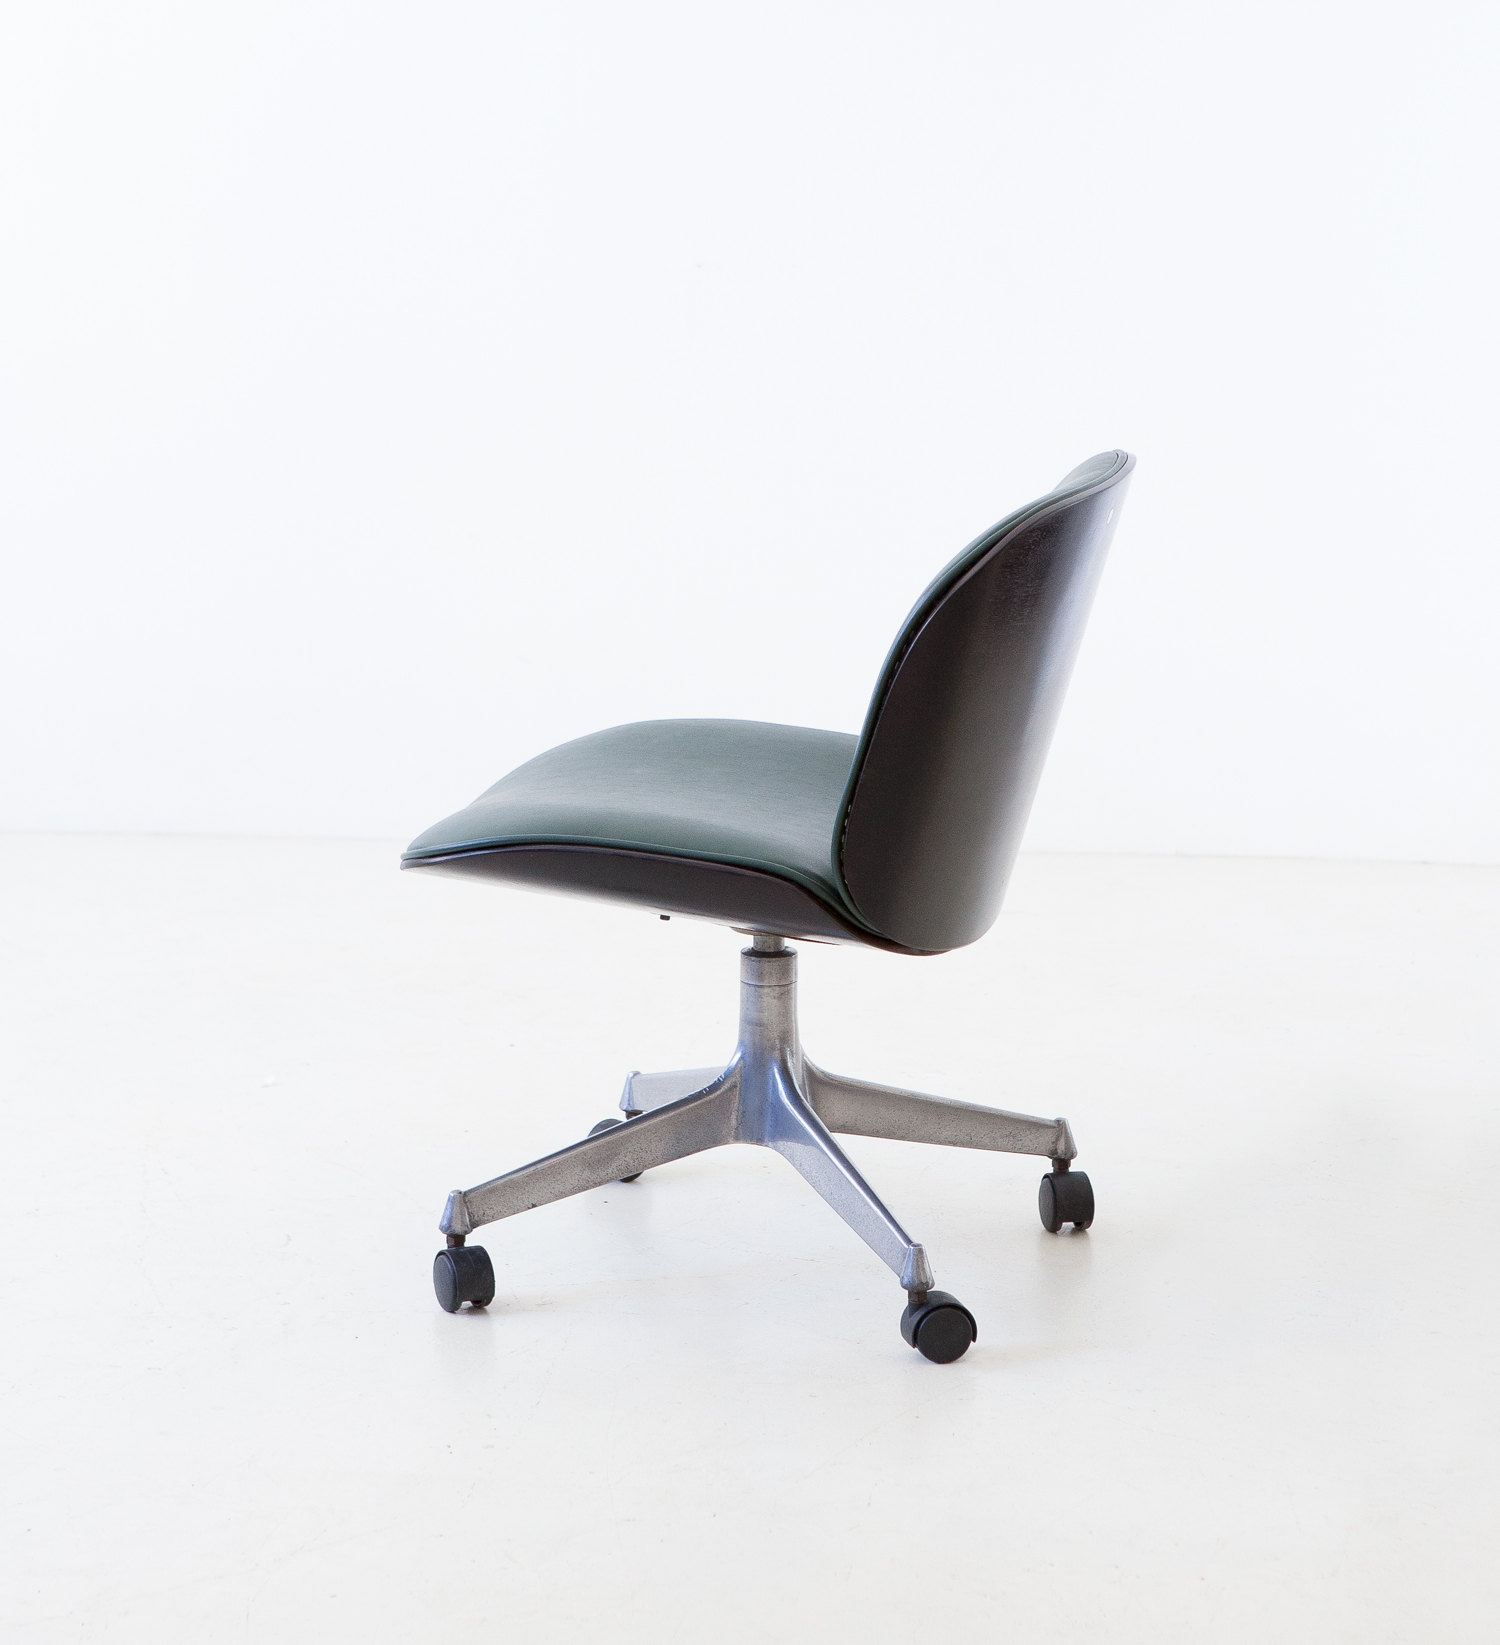 1950s-swivel-desk-chair-by-Ico-Parisi-for-M.i.M.-4-se331